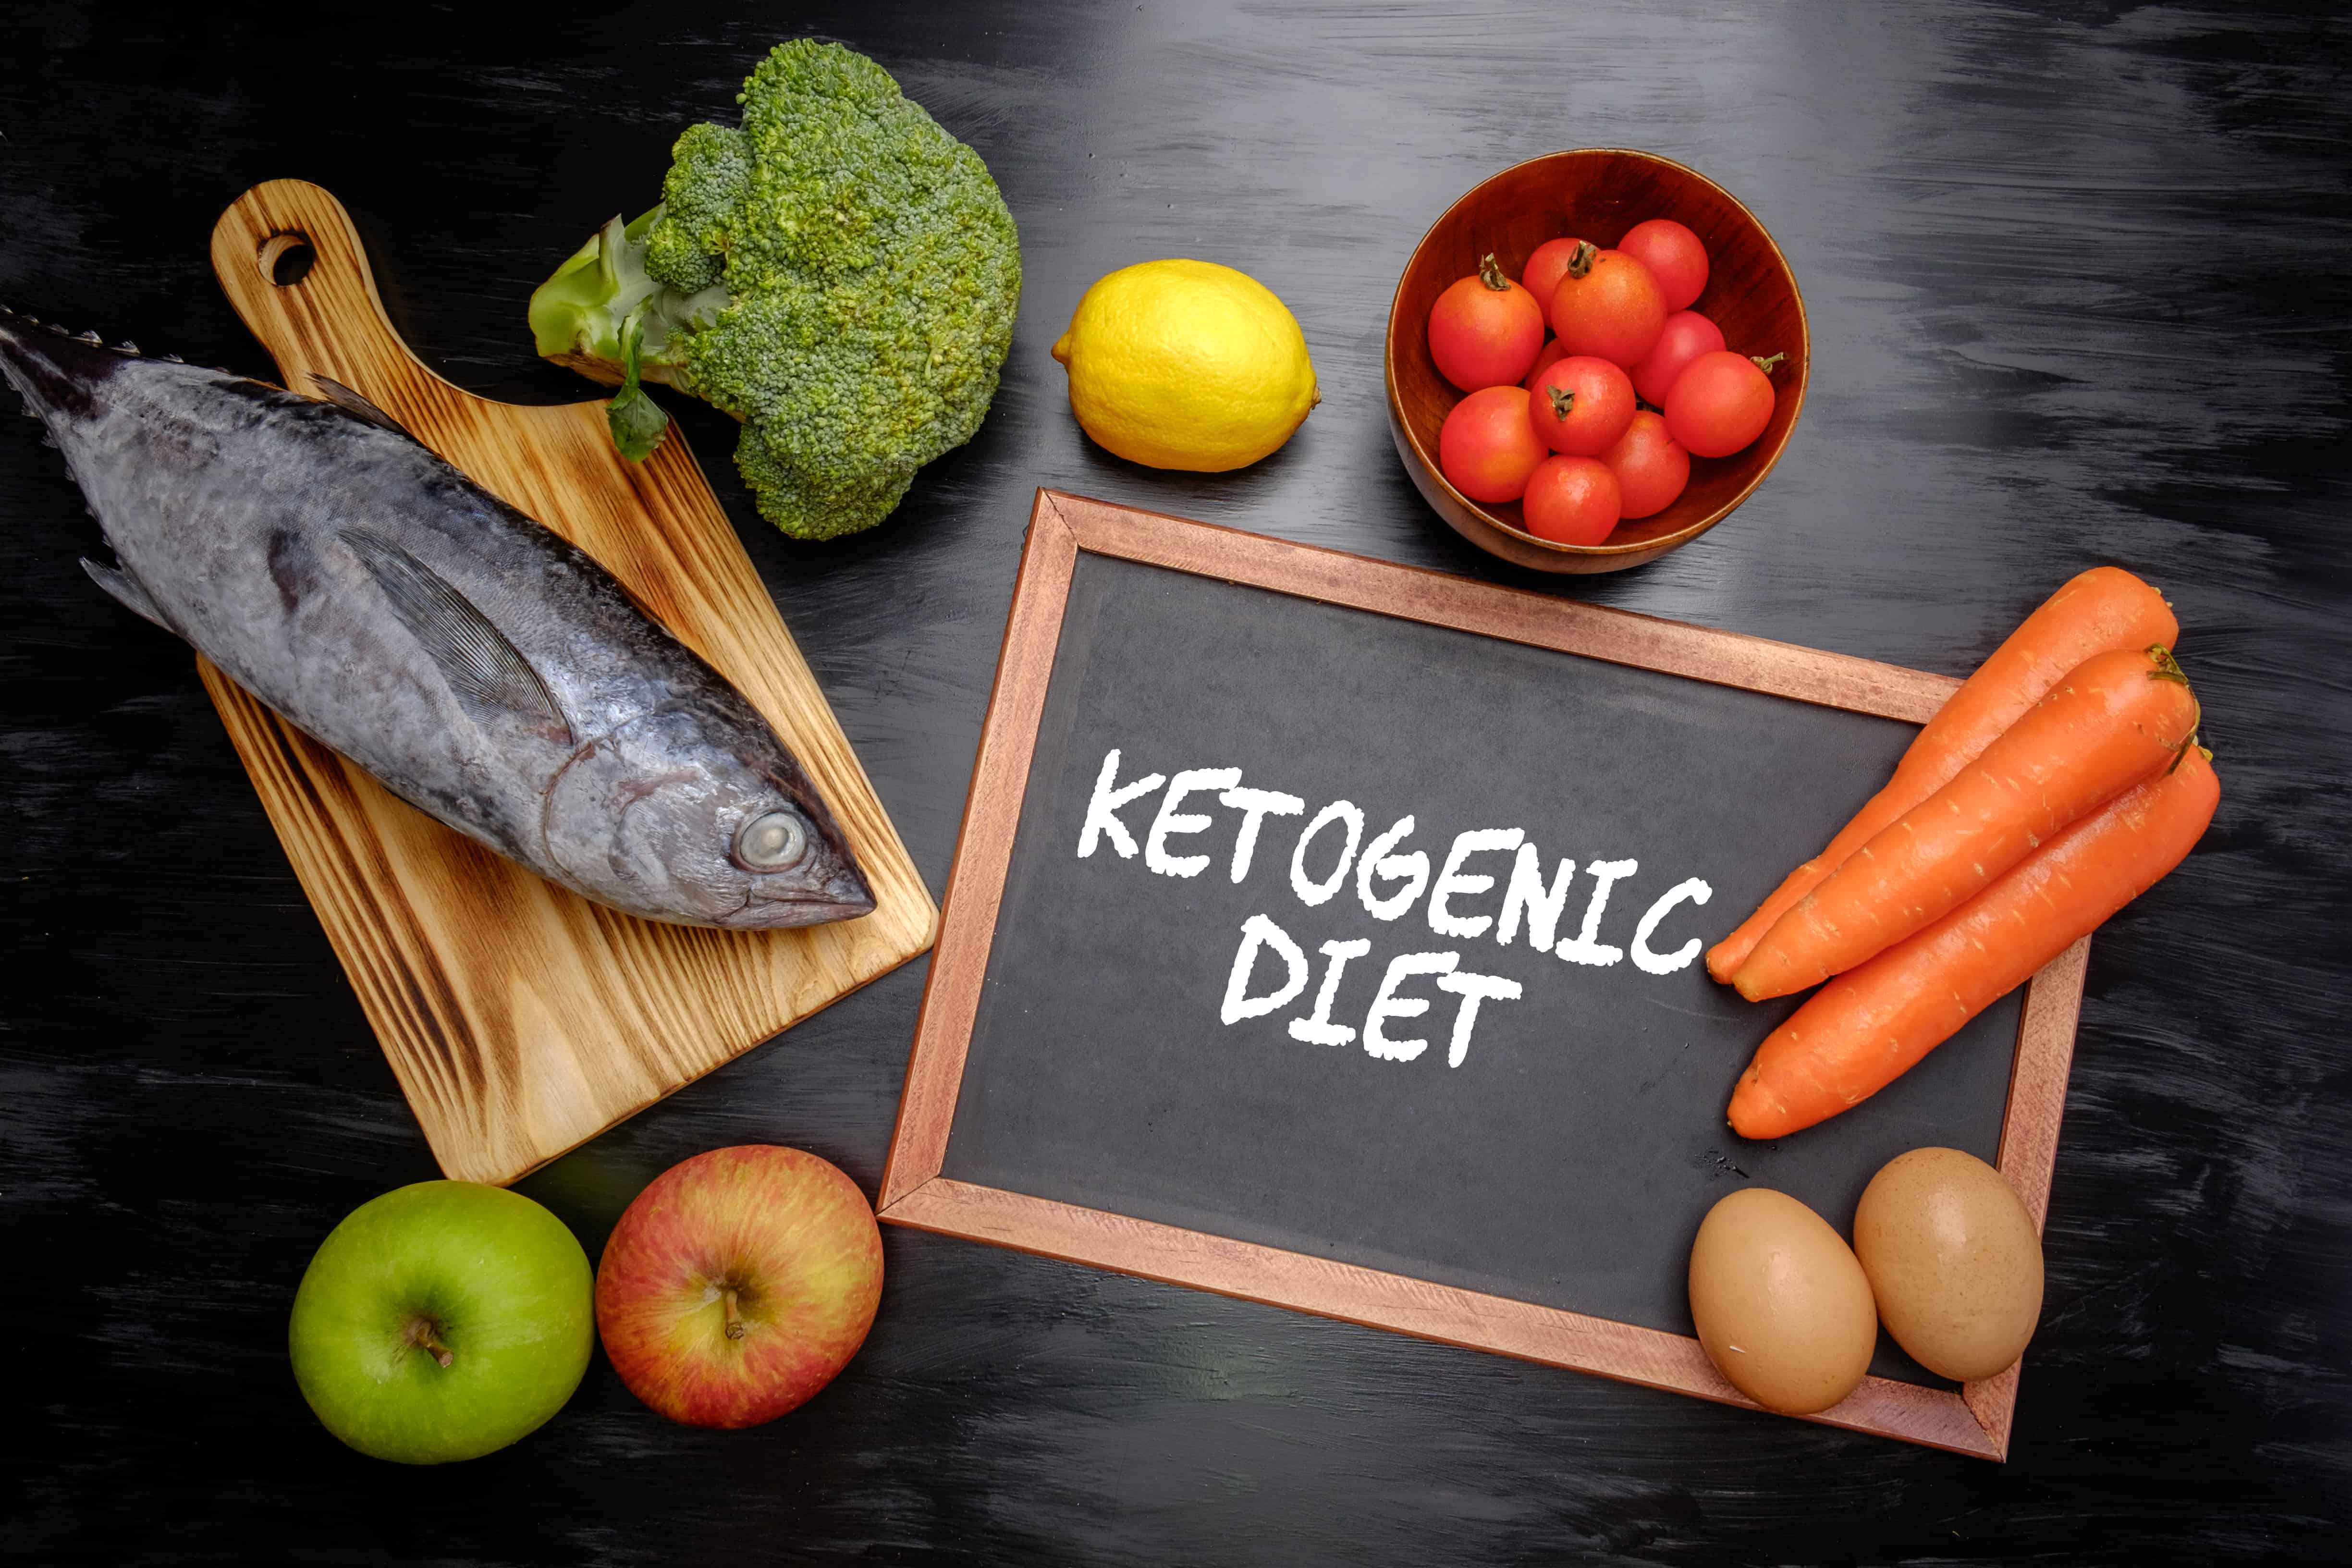 Using A Ketogenic Diet To Fight Cancer By Starving Cancer Cells Of Glucose